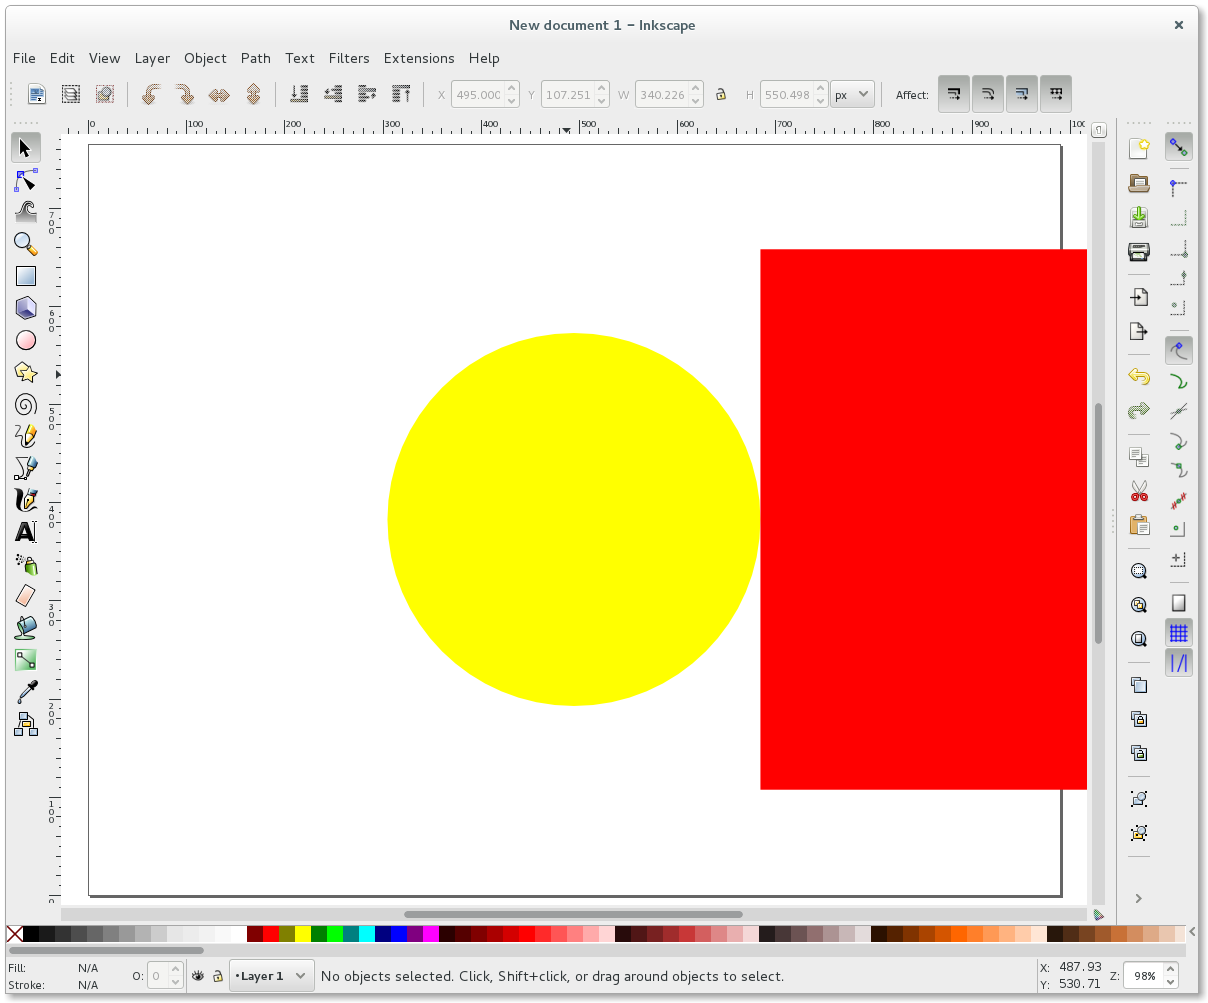 Inkscape align yellow circle and red rectangle